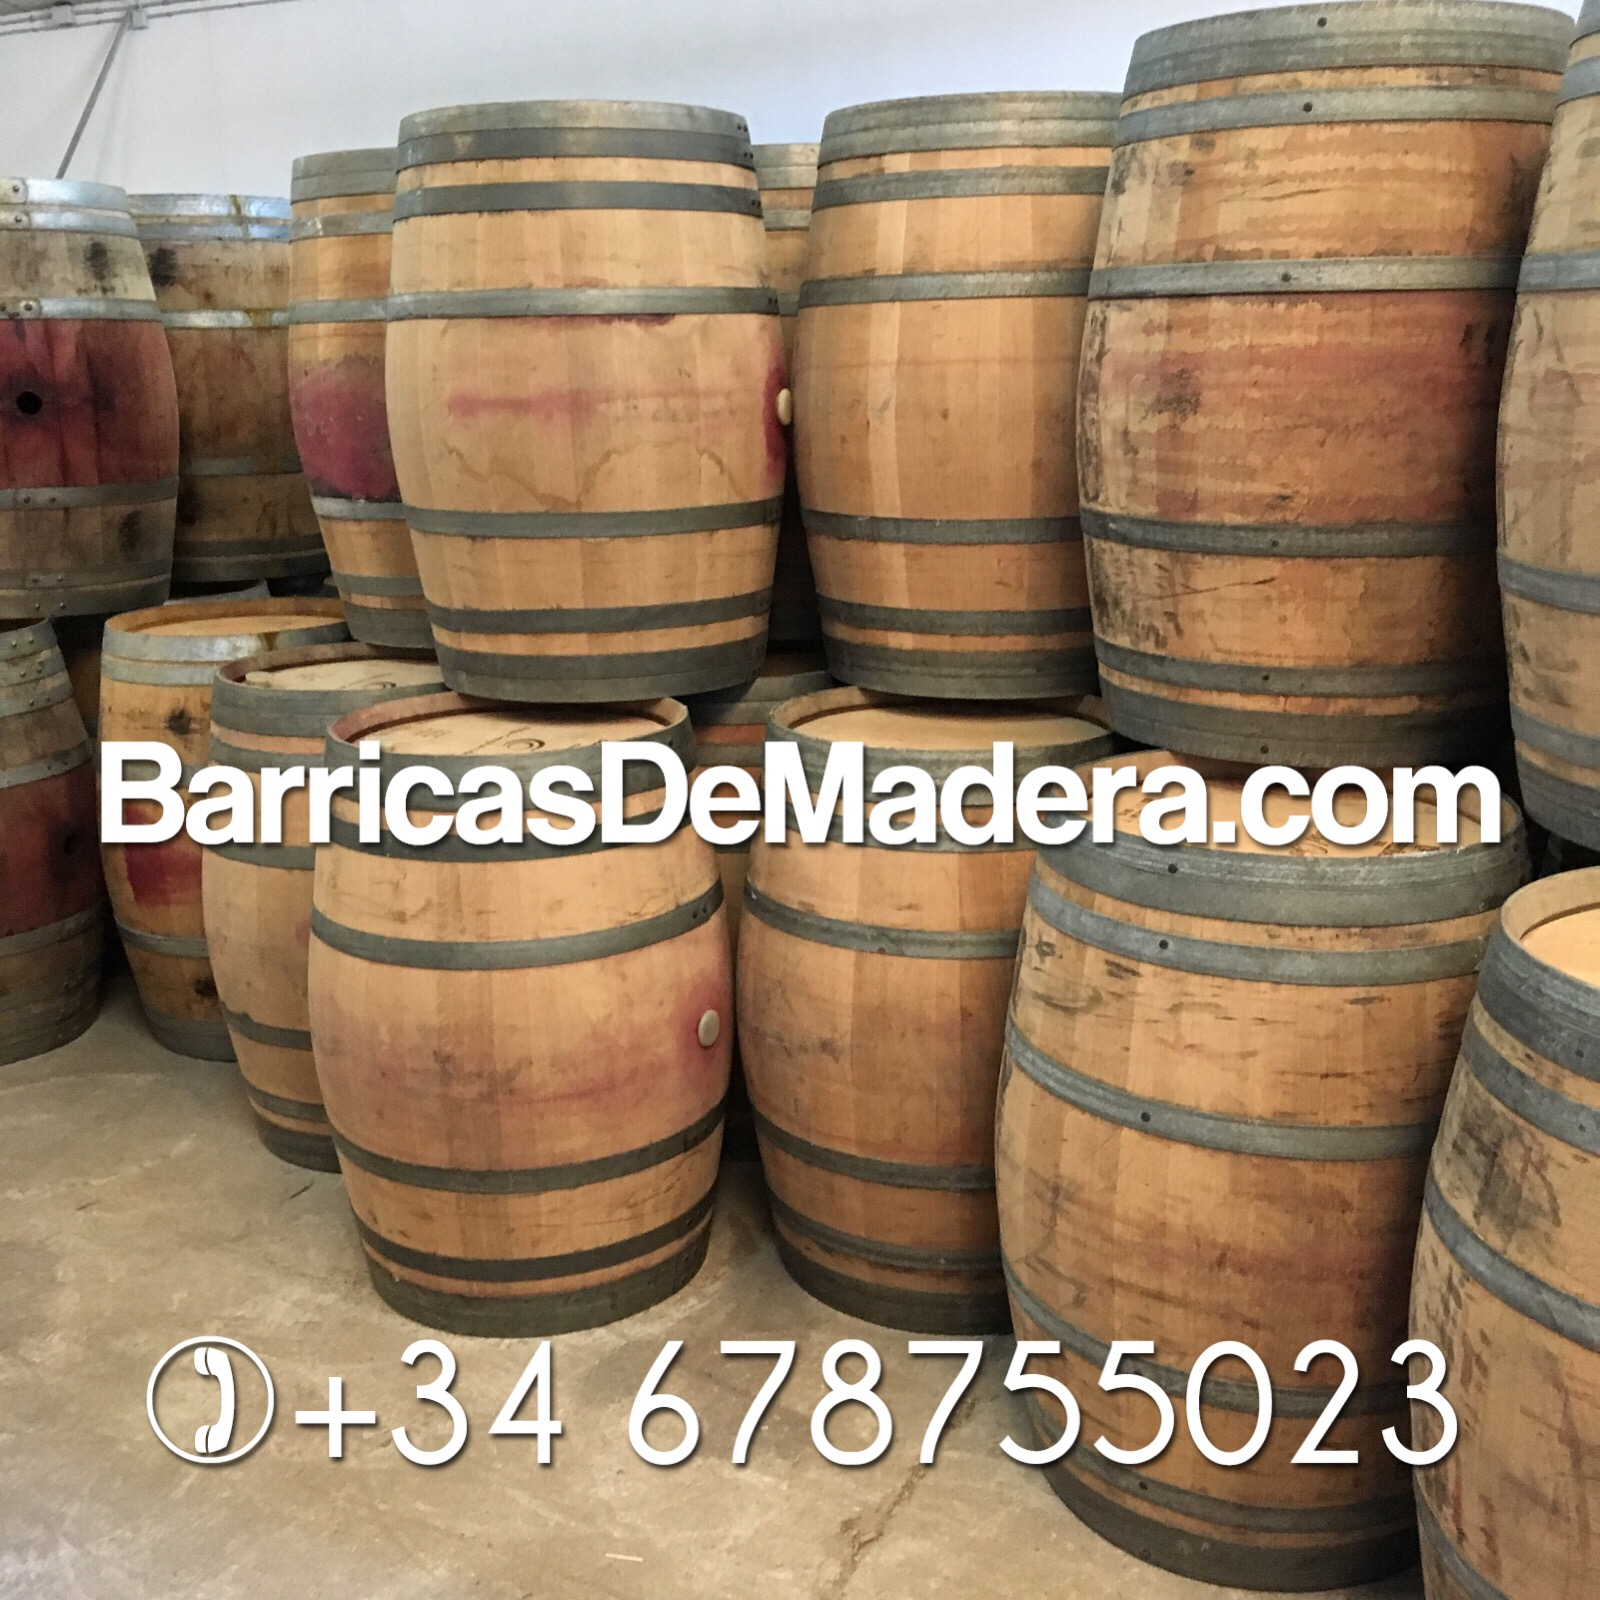 wholesale wine barrels spain